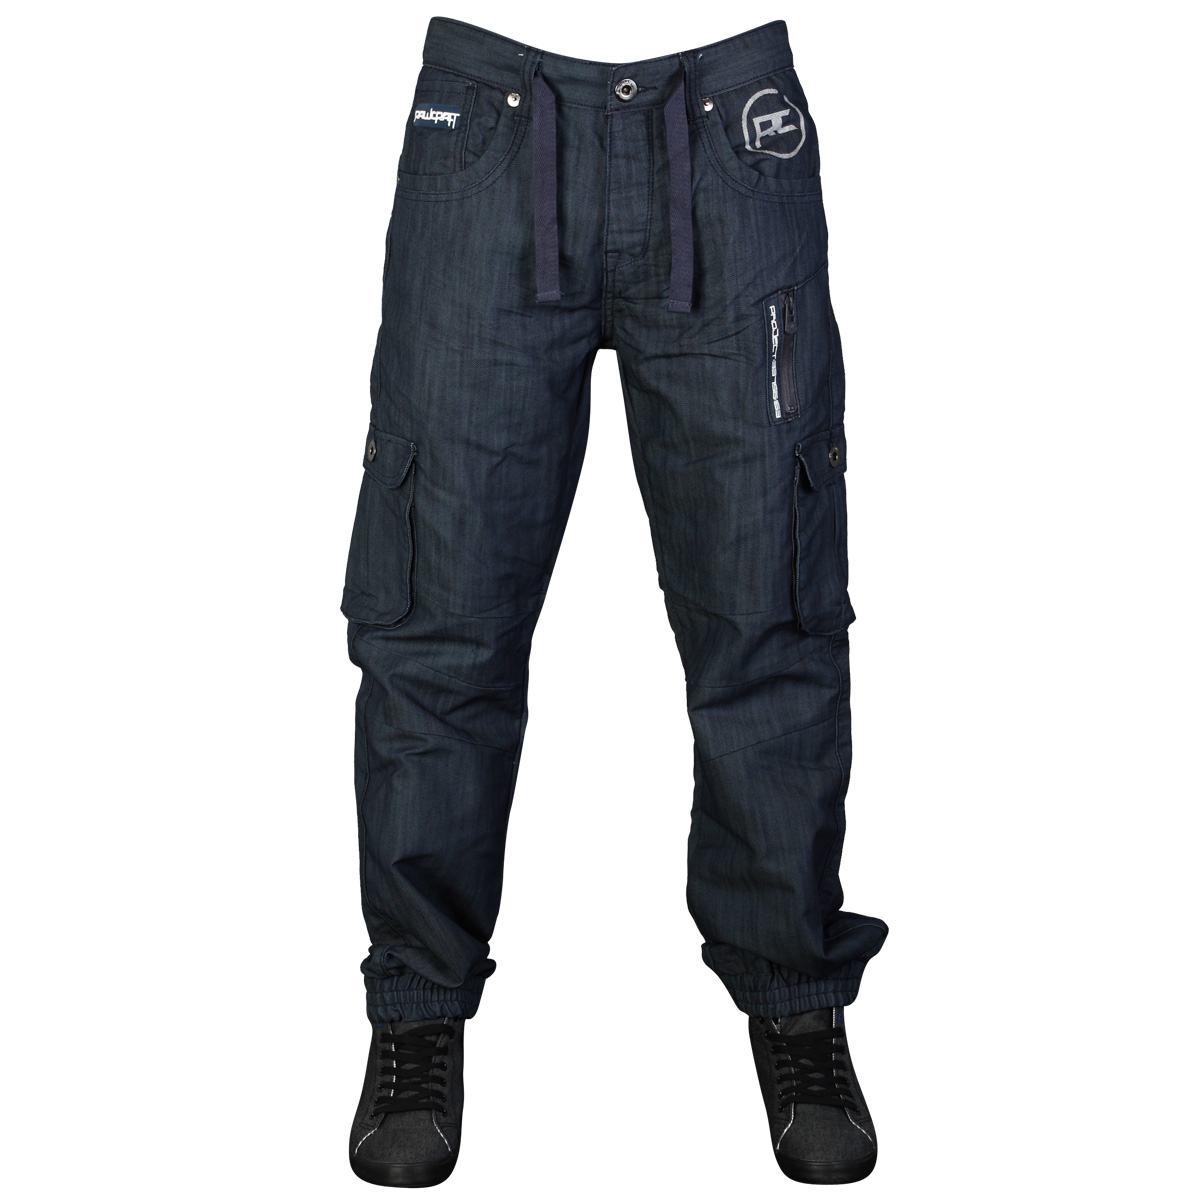 MENS BLUE DENIM RAWCRAFT CYCLOPES DESIGNER CUFFED FIT JEANS ALL WAIST & LEG SIZE